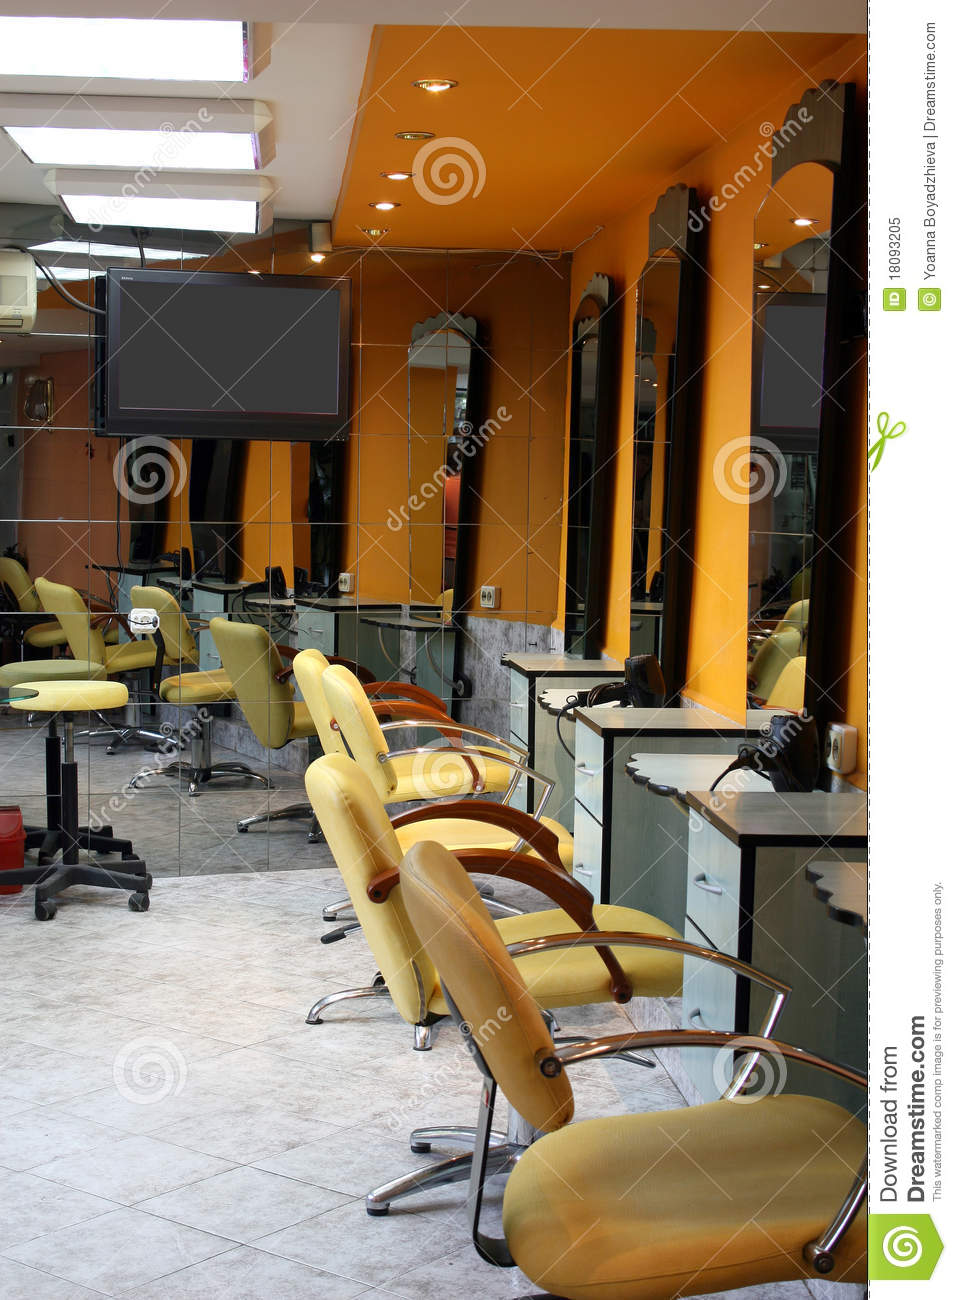 Hair Saloon Stock Image Image Of Wall Design Shop